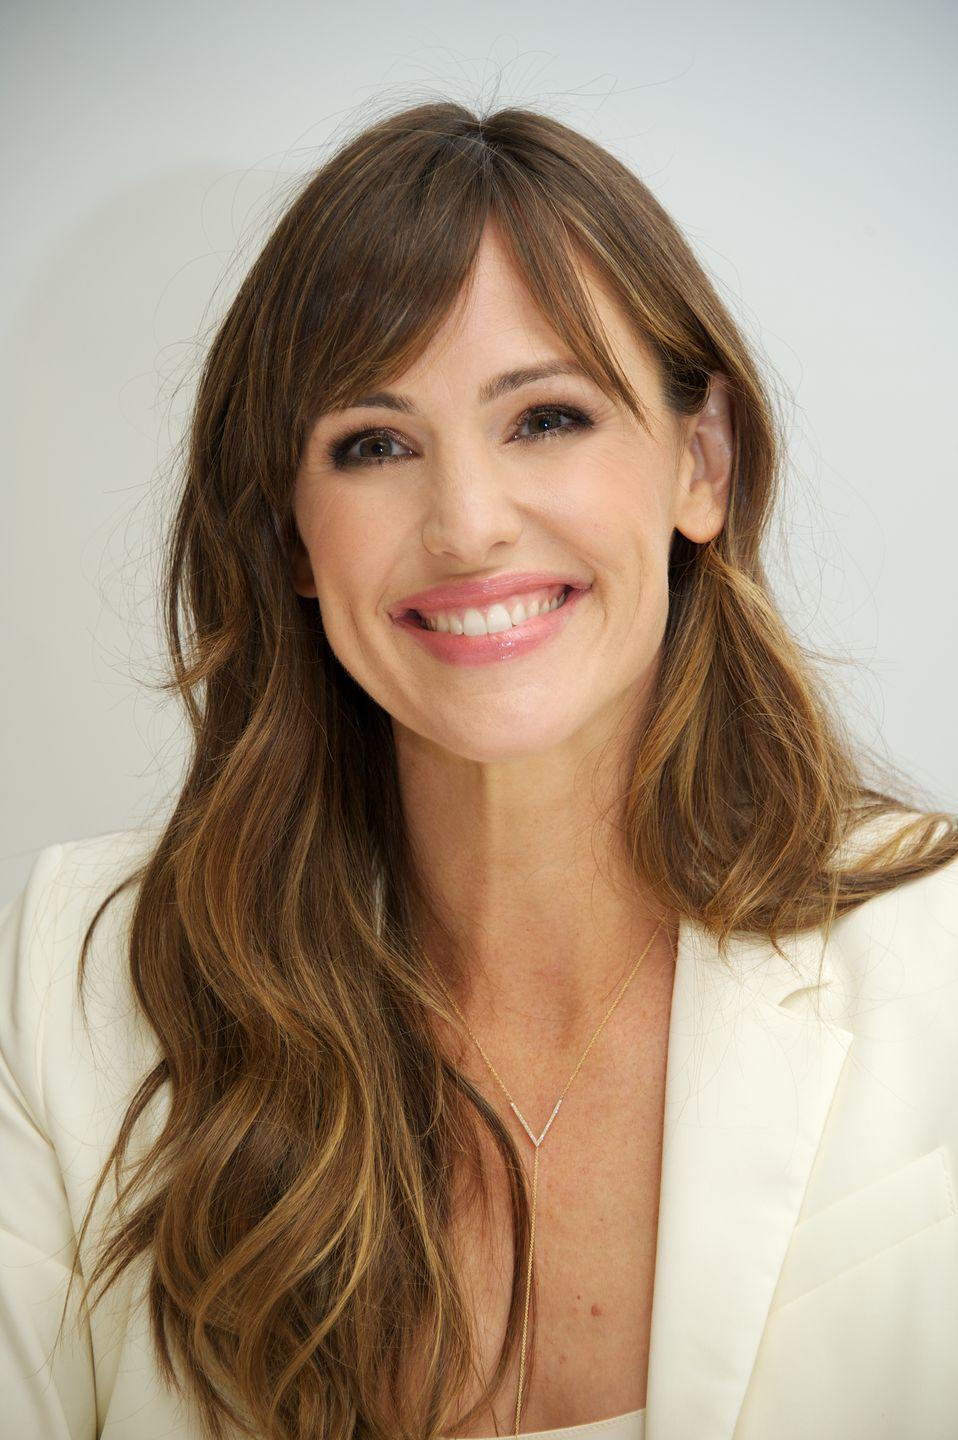 """<p>Garner called her 2005 movie <em>Elektra</em> """"awful,"""" according to her ex-boyfriend Michael Vartan. In an interview with <em><a href=""""http://www.sfgate.com/news/article/Jennifer-Garner-deemed-Elektra-awful-Penelope-2702759.php"""" rel=""""nofollow noopener"""" target=""""_blank"""" data-ylk=""""slk:Us Weekly"""" class=""""link rapid-noclick-resp"""">Us Weekly</a></em>, Vartan is quoted as saying, """"I heard [<em>Elektra</em>] was awful. [Jennifer] called me and told me it was awful. She had to do it because of <em>Daredevil</em>. It was in her contract.""""</p>"""